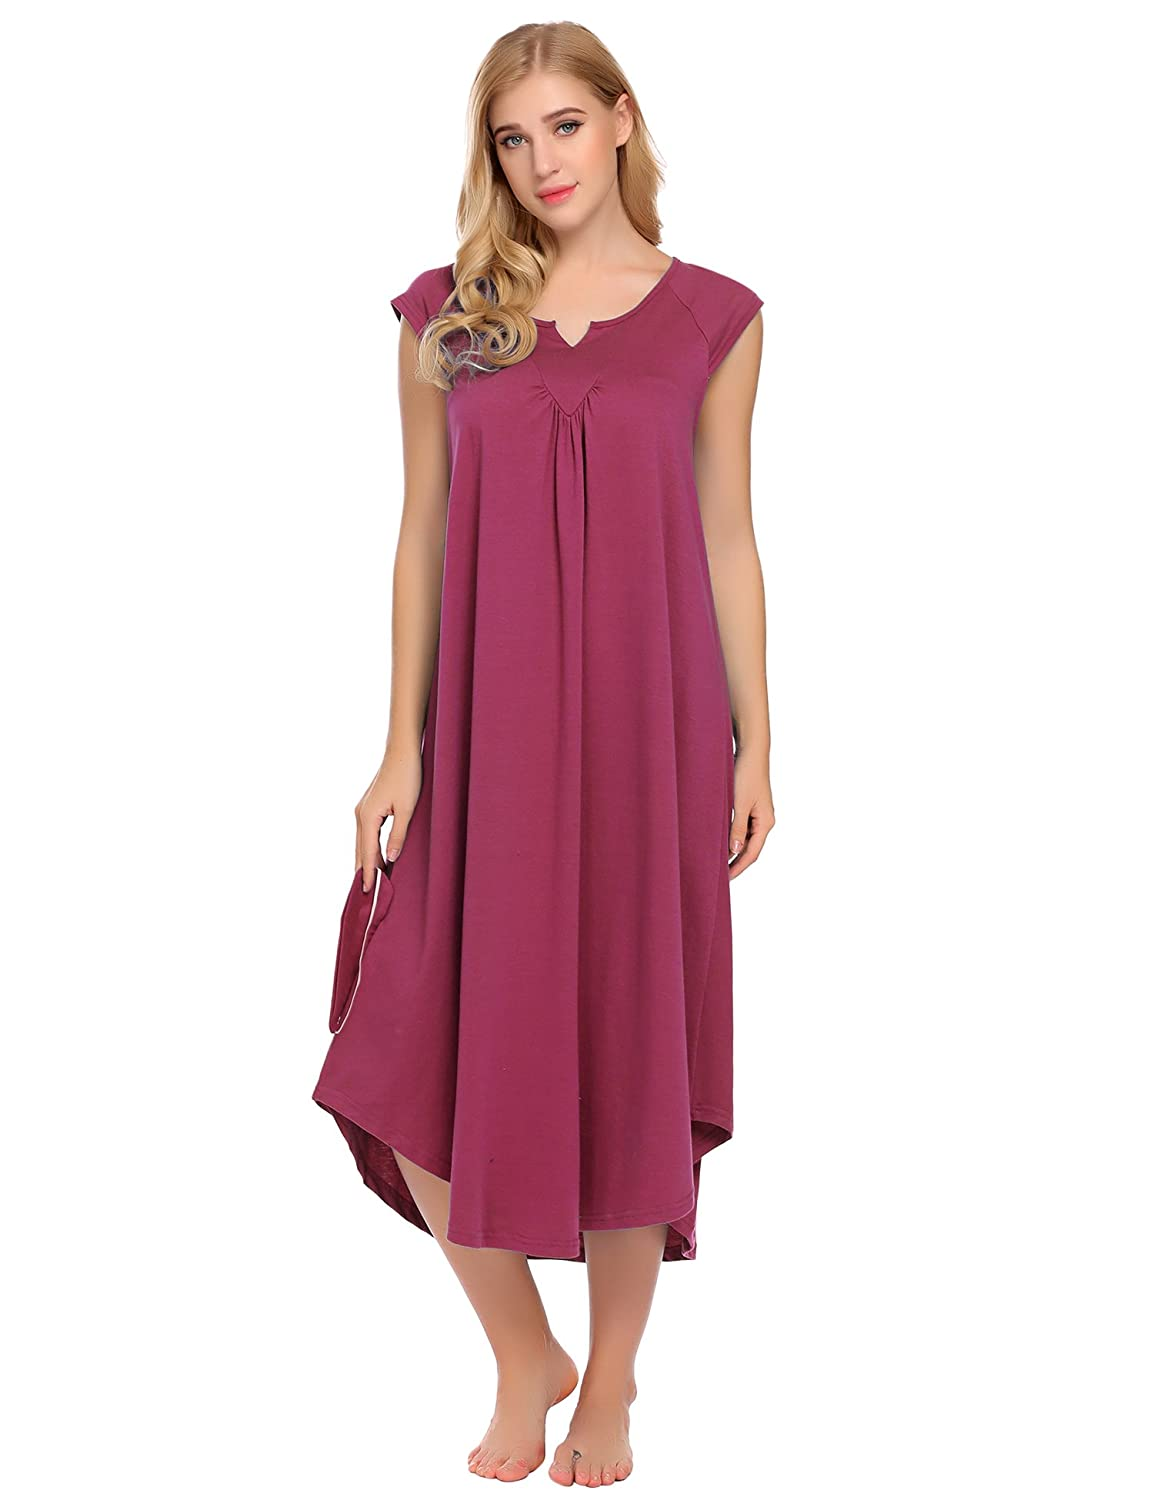 Cherry Red Asatr Women's Nightgown Dress Long Cotton Nightdress Loose Cap Short Sleeve Sleepwear Maxi Dress SXXL